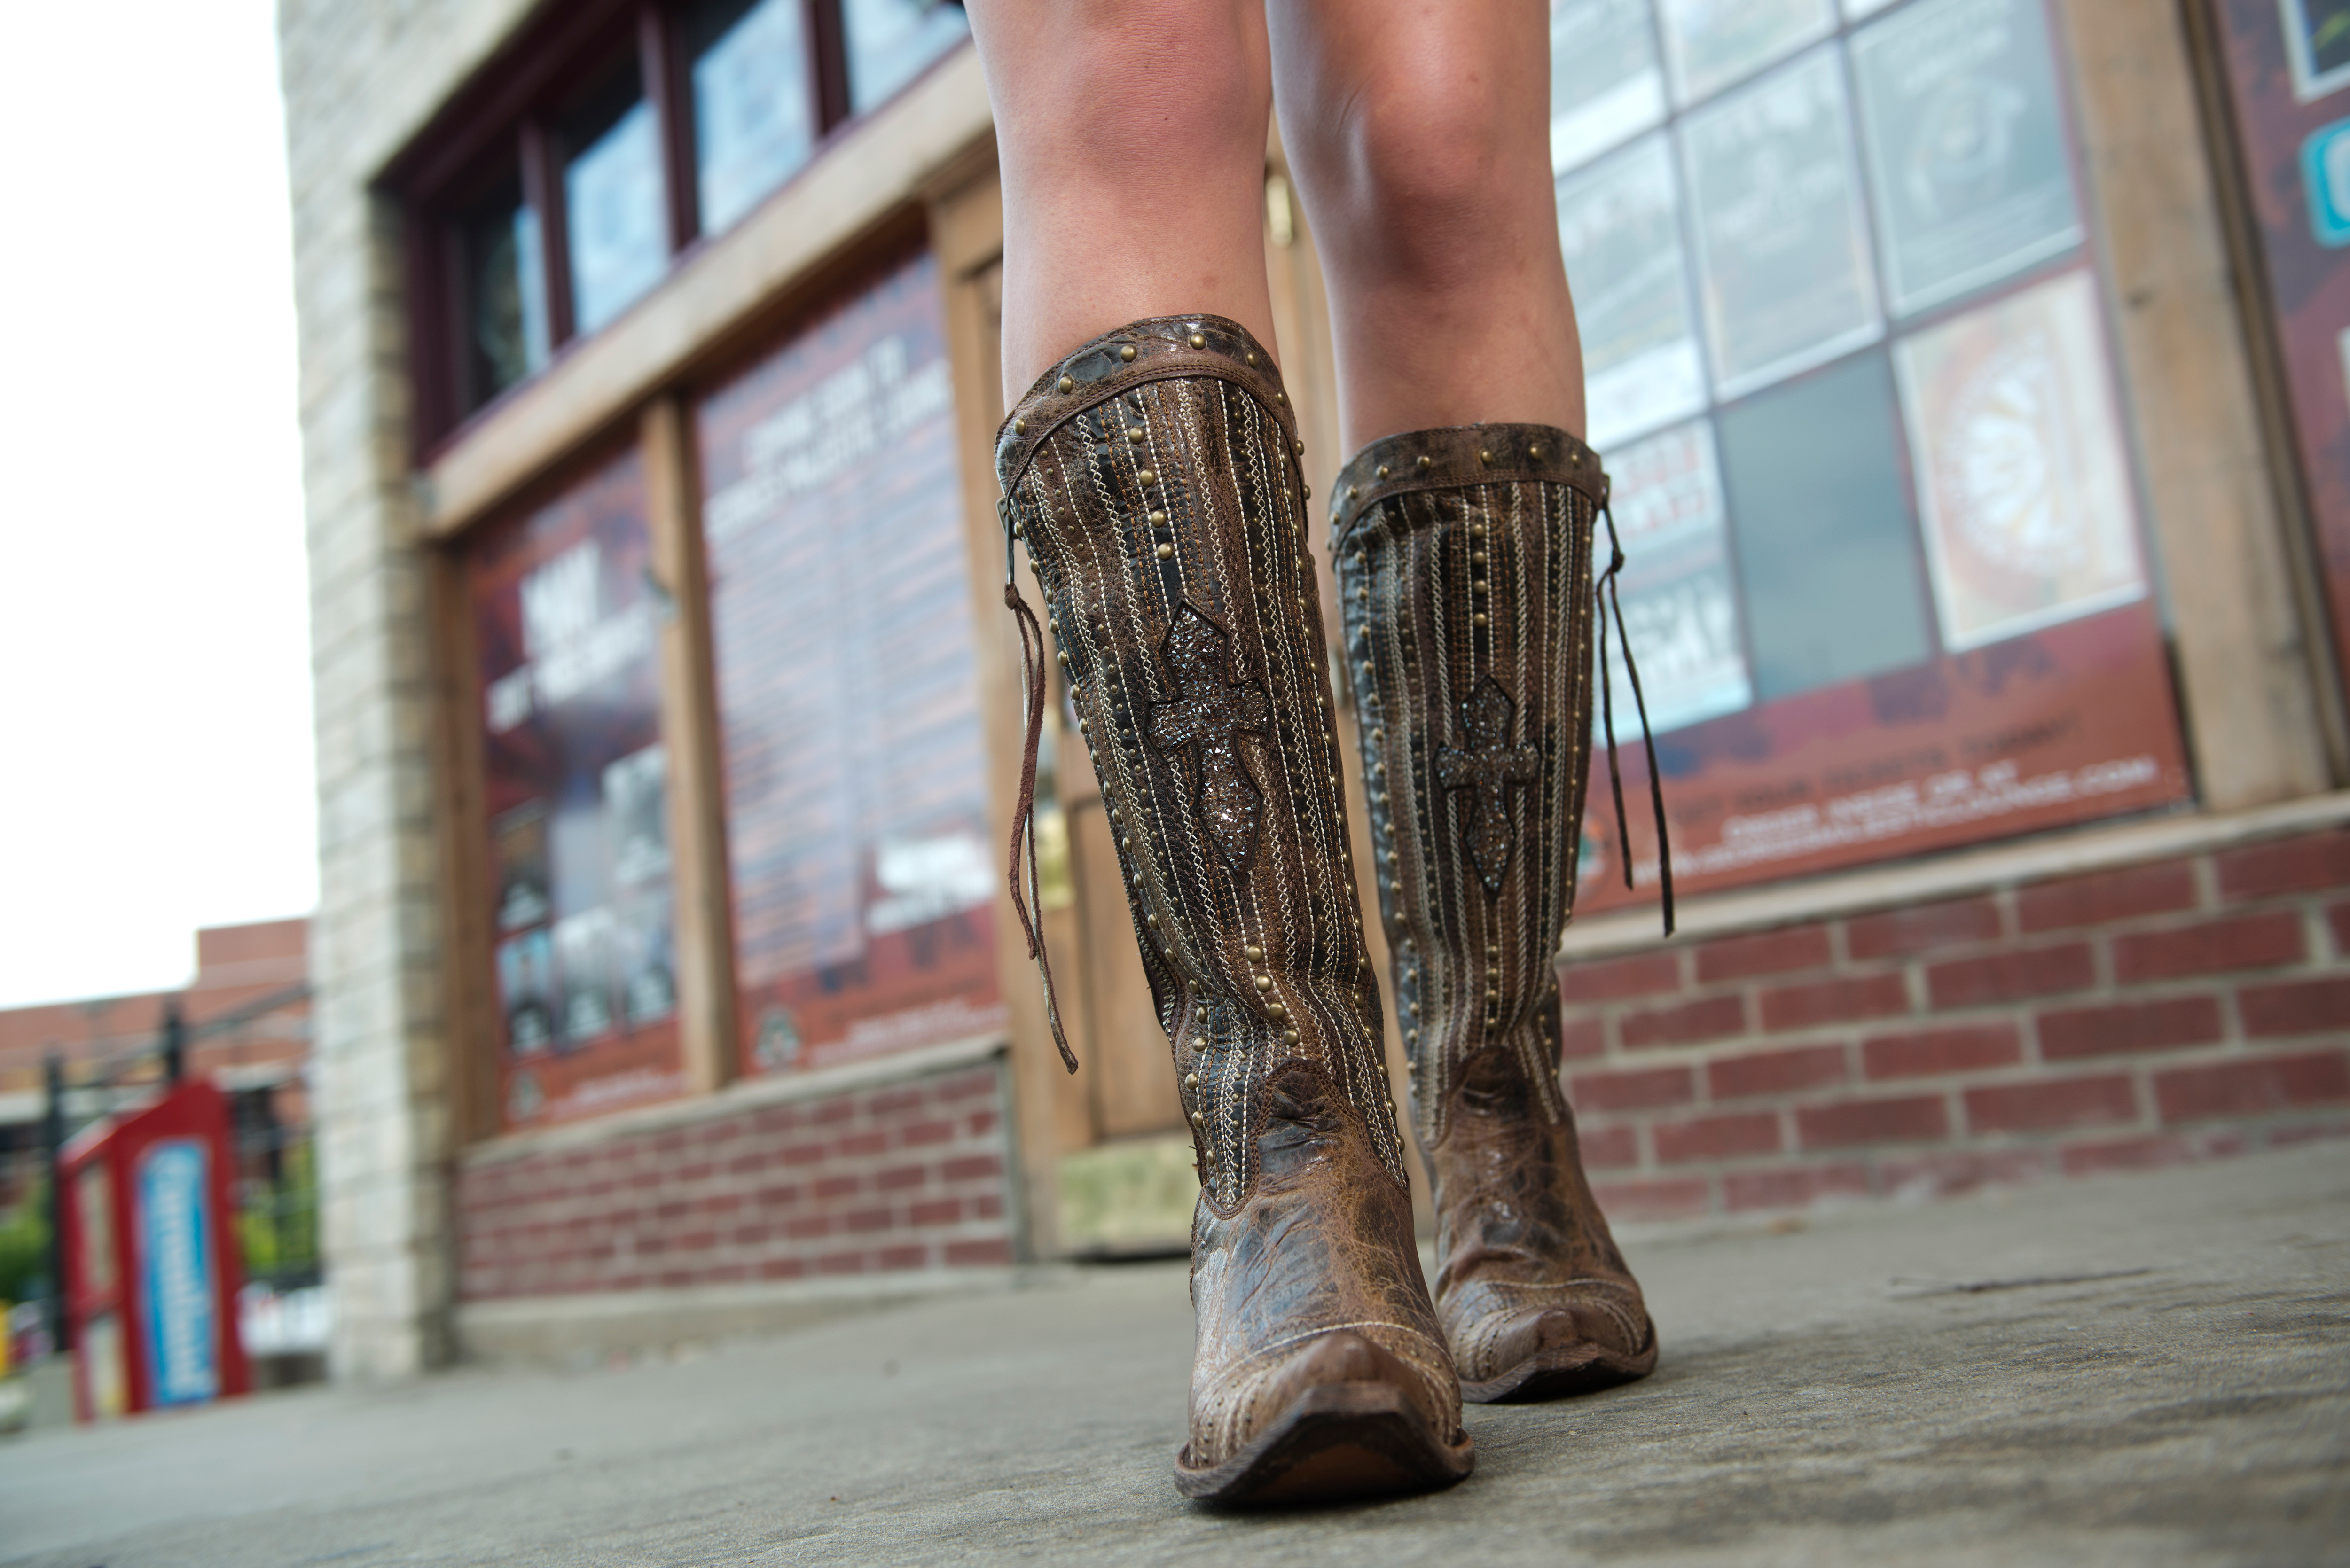 The Strange-But-True Story of How a Cowboy Boot Startup Took Over Facebook